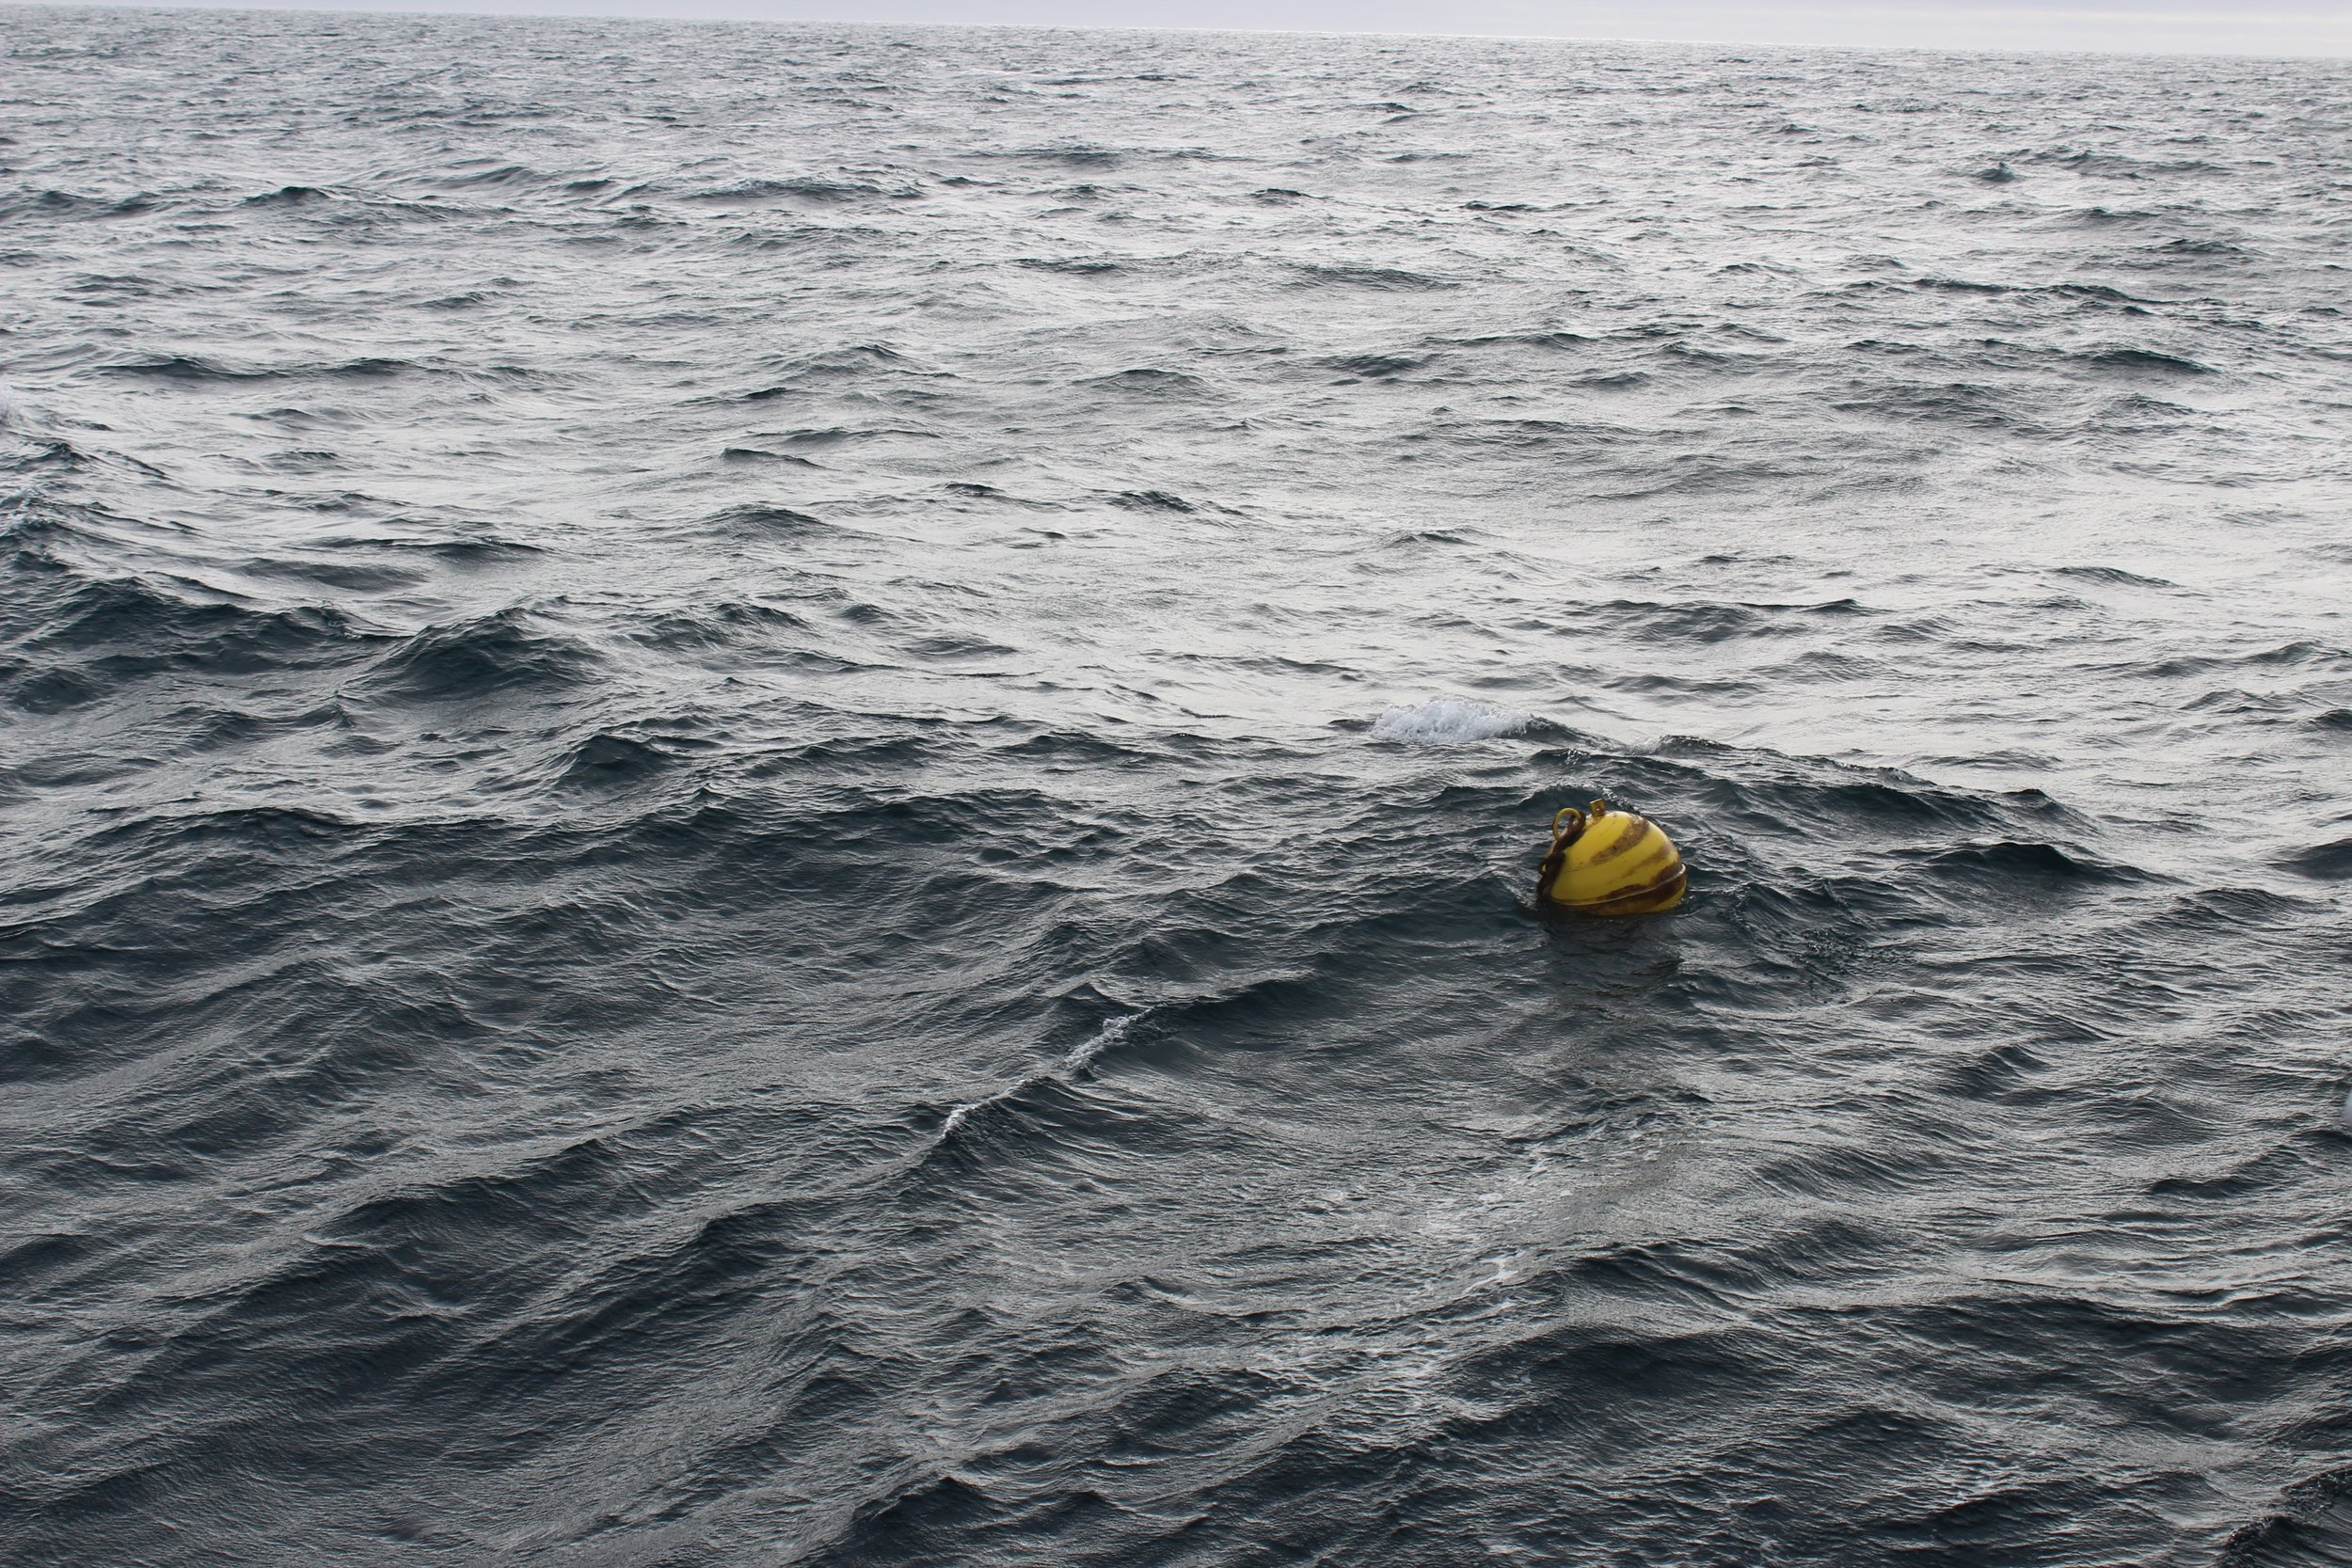 The first of many mooring buoys waiting to be brought on board for data analysis. Photo credit: Harmony Wayner